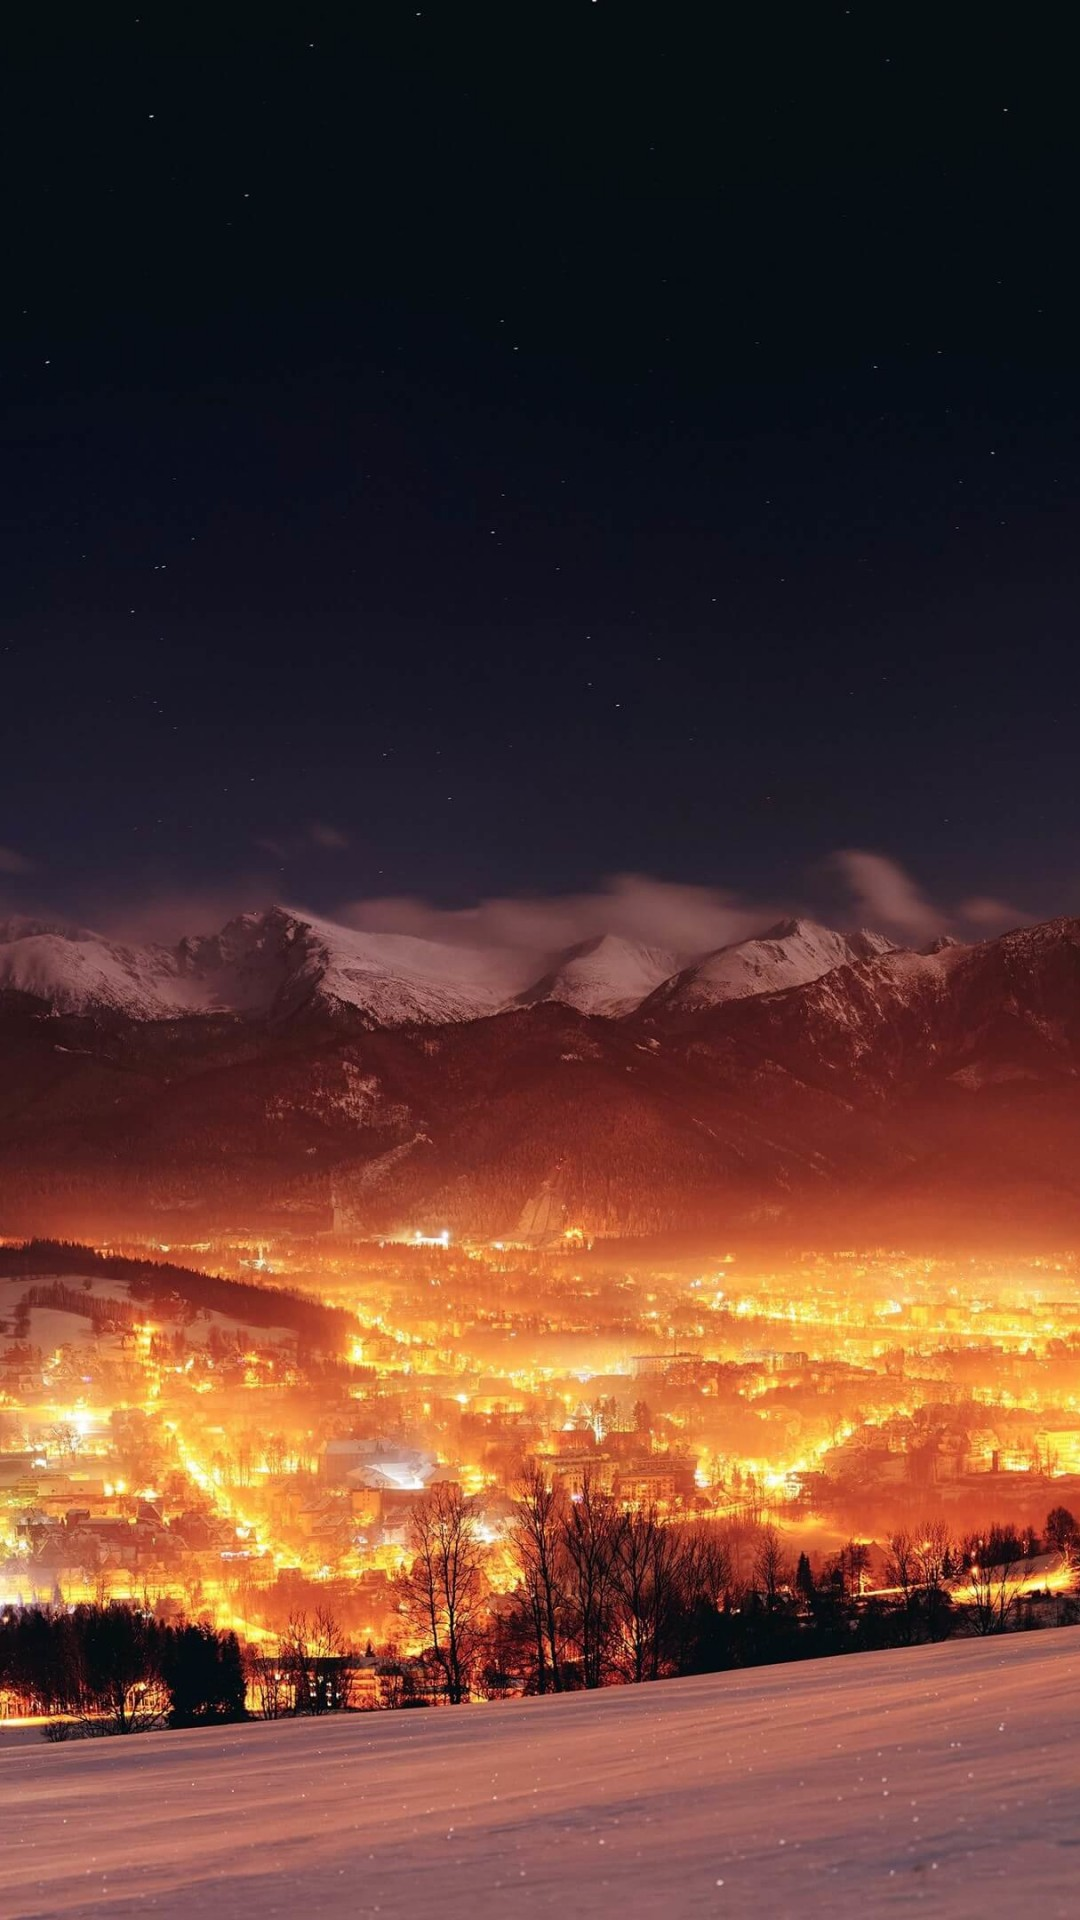 Zakopane City At Night - Poland Wallpaper for LG G2